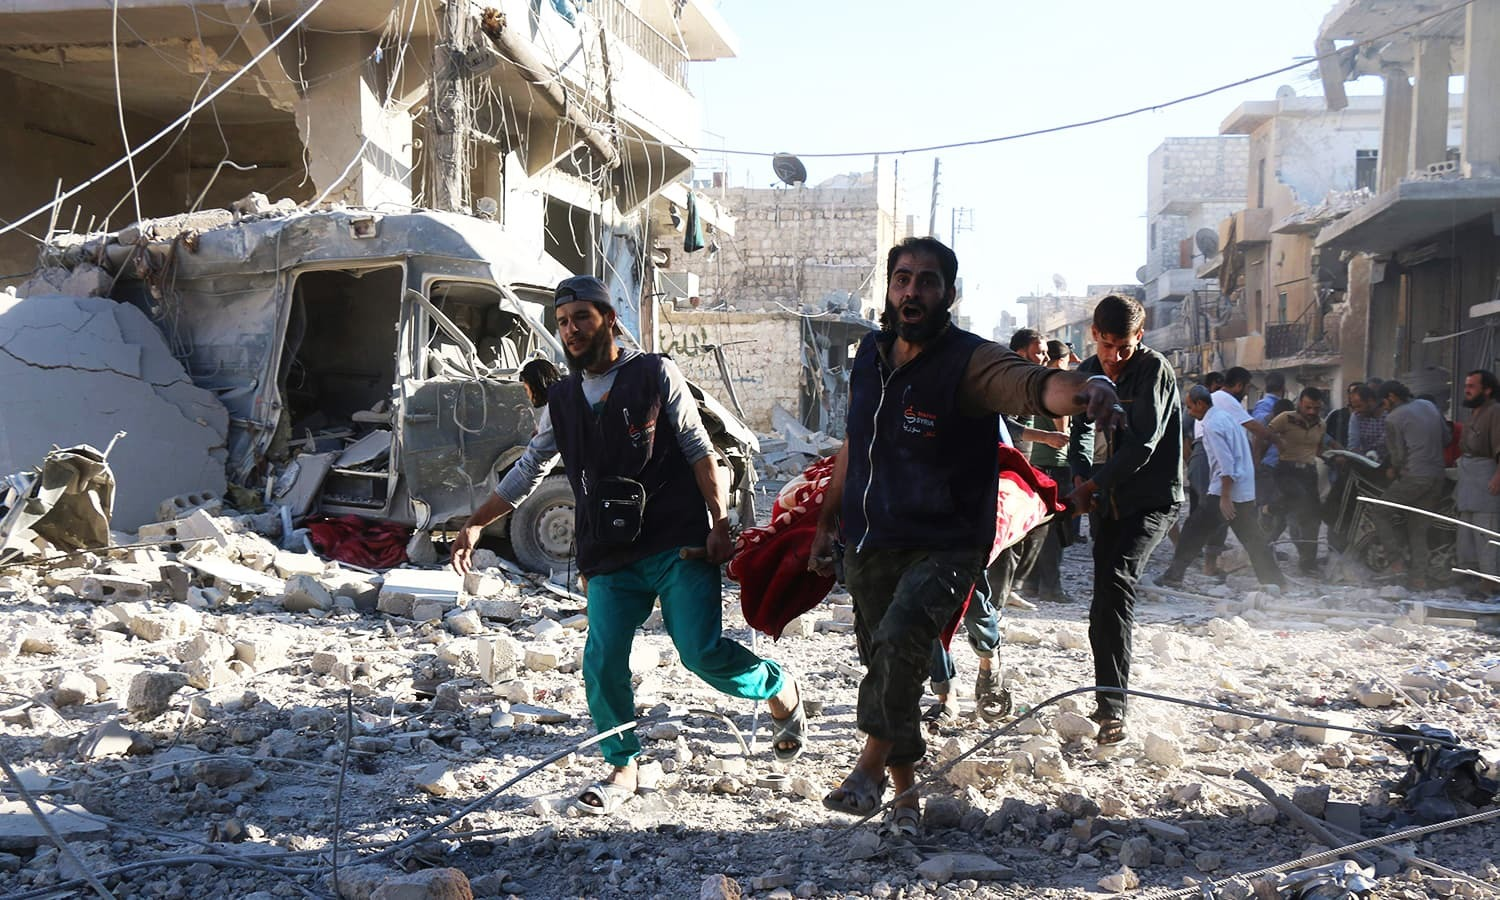 As US-Russia tension mounts, UN warns against letting Syria crisis 'spiral' out of control